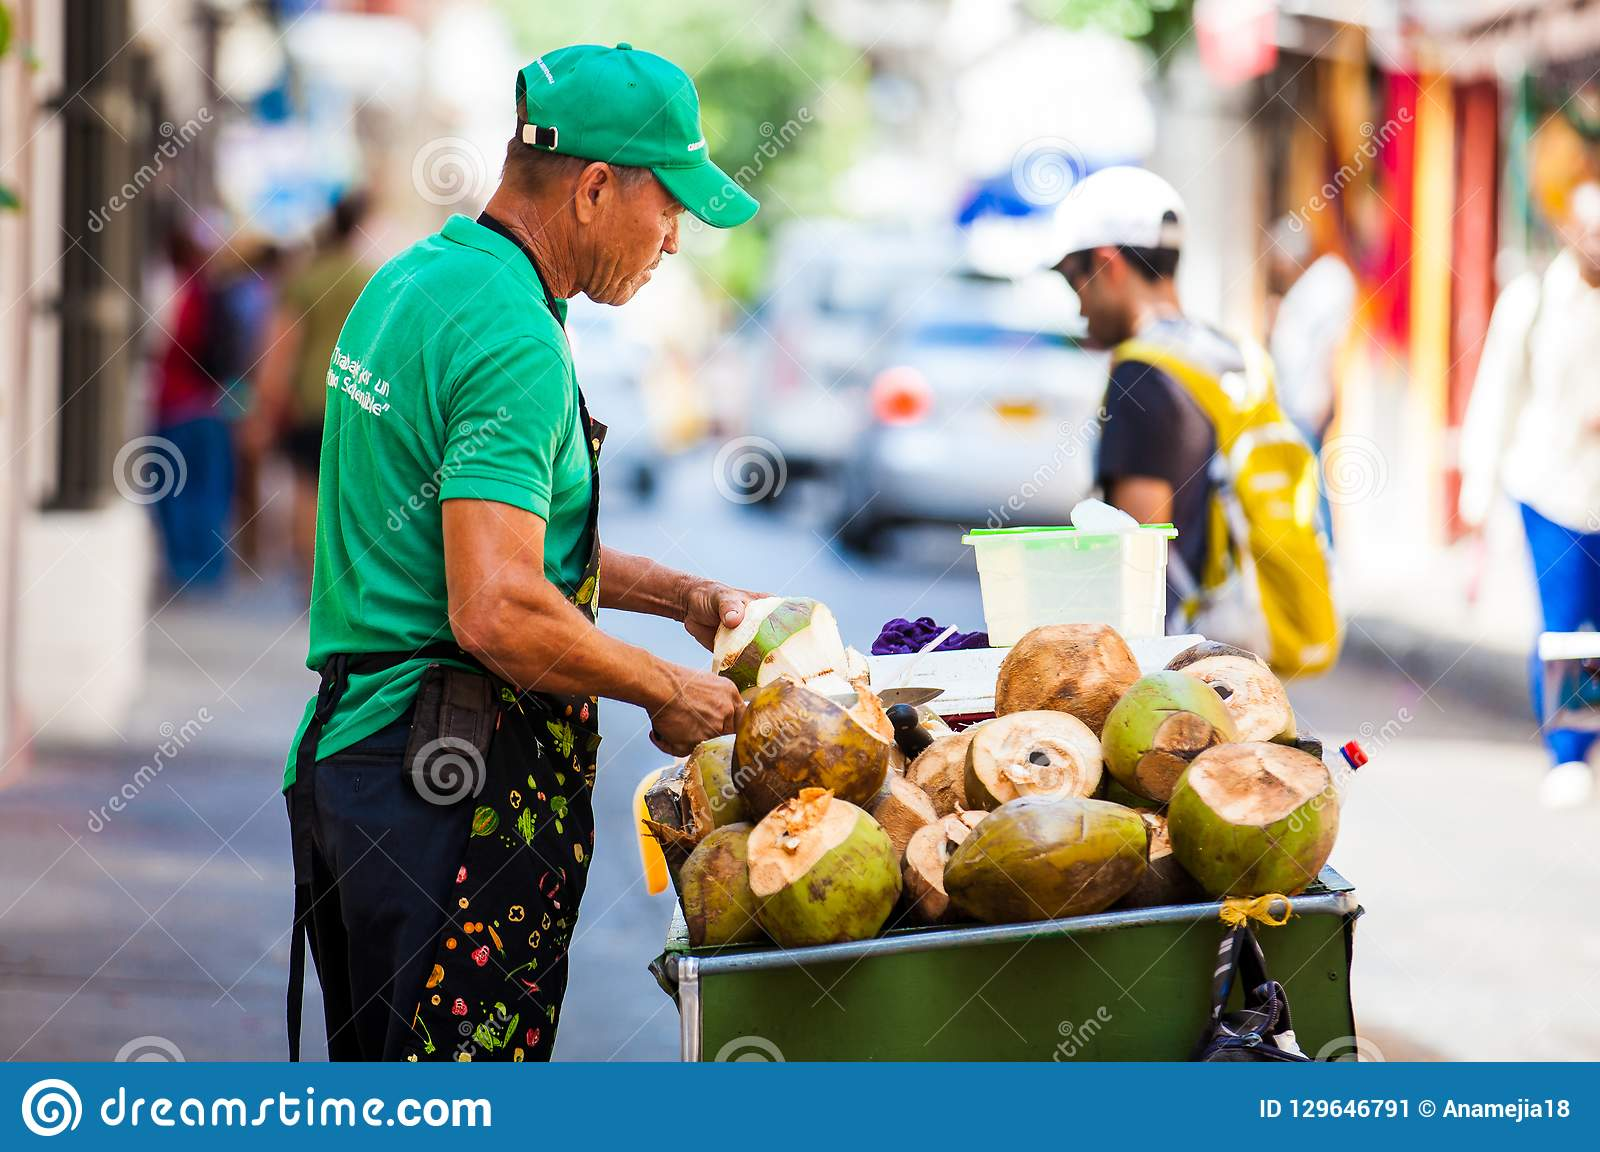 Street Sale Of Coconut Water In Cartagena De Indias